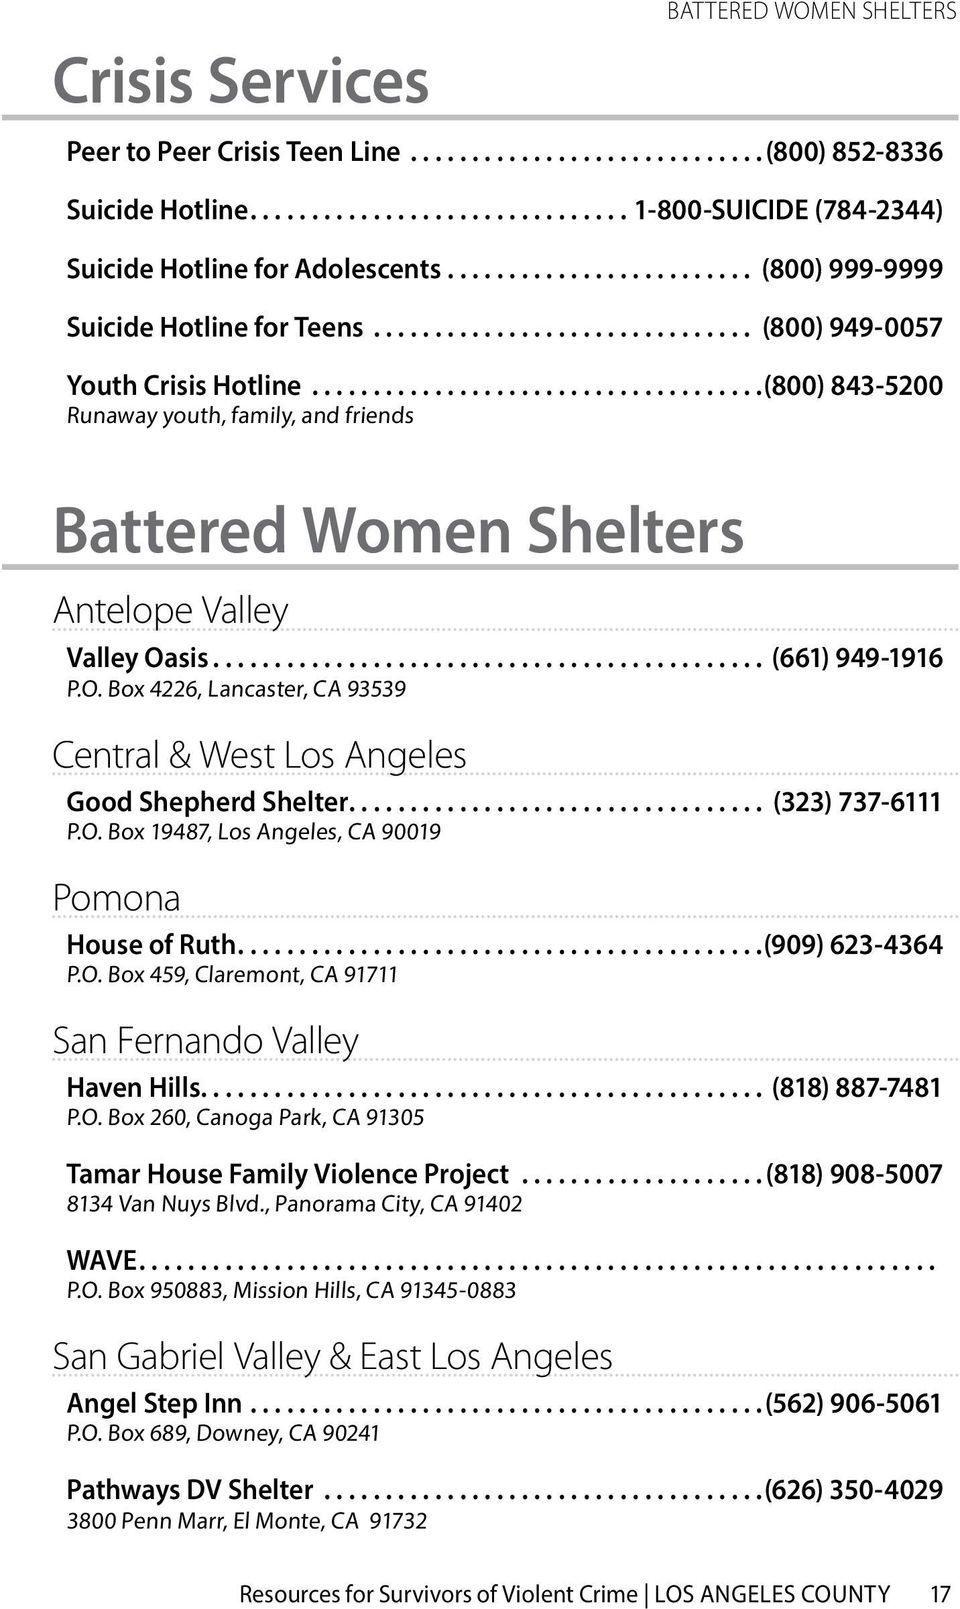 EN SHELTERS Antelope Valley Valley Oasis... (661) 949-1916 P.O. Box 4226, Lancaster, CA 93539 Central & West Los Angeles Good Shepherd Shelter.... (323) 737-6111 P.O. Box 19487, Los Angeles, CA 90019 Pomona House of Ruth.